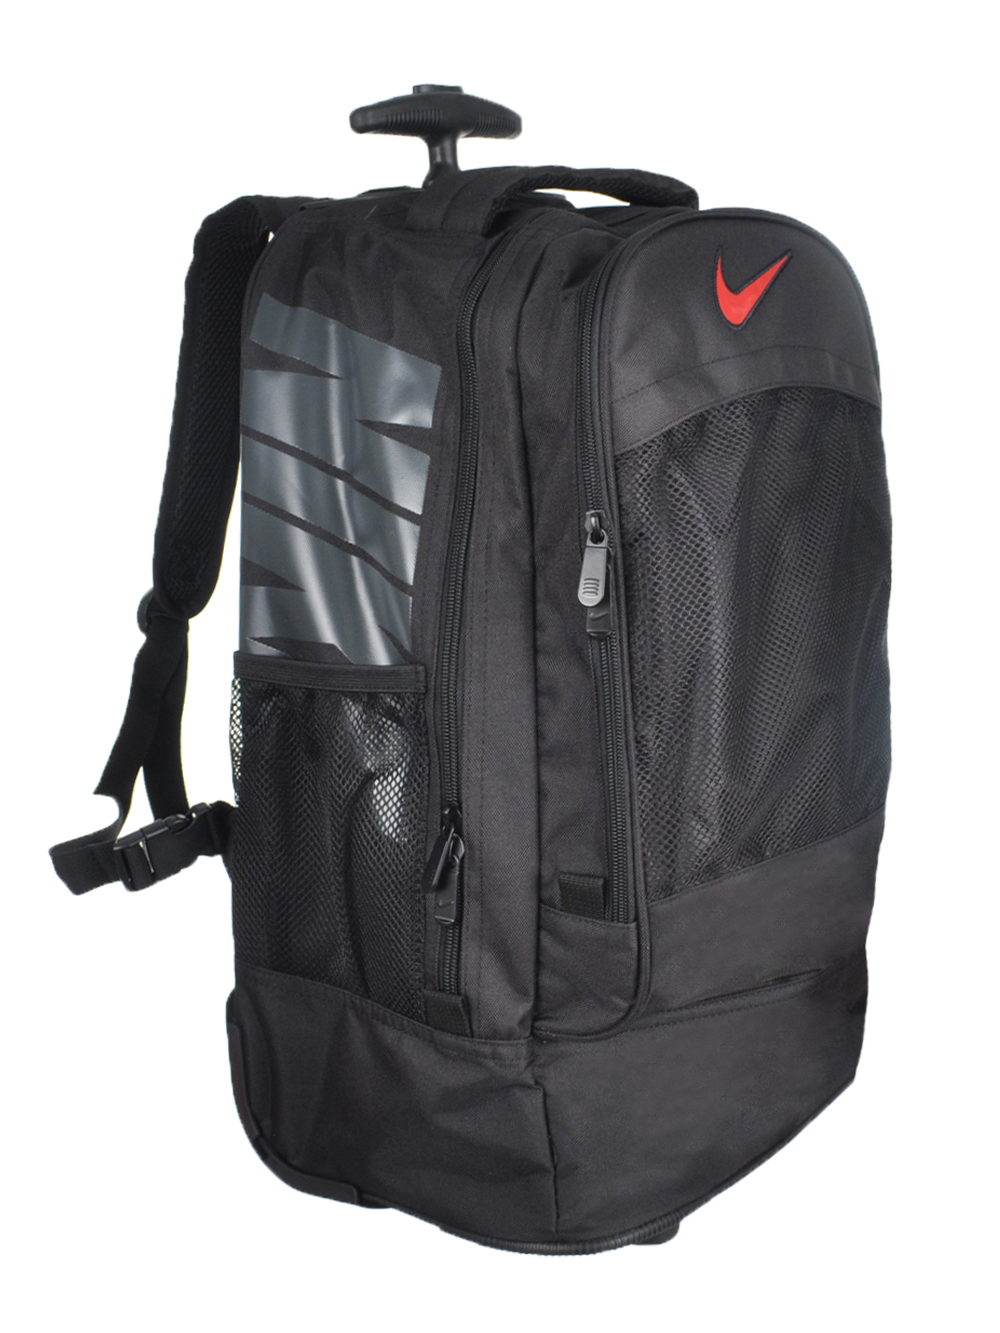 76c9c60128 Nike Rolling Backpack